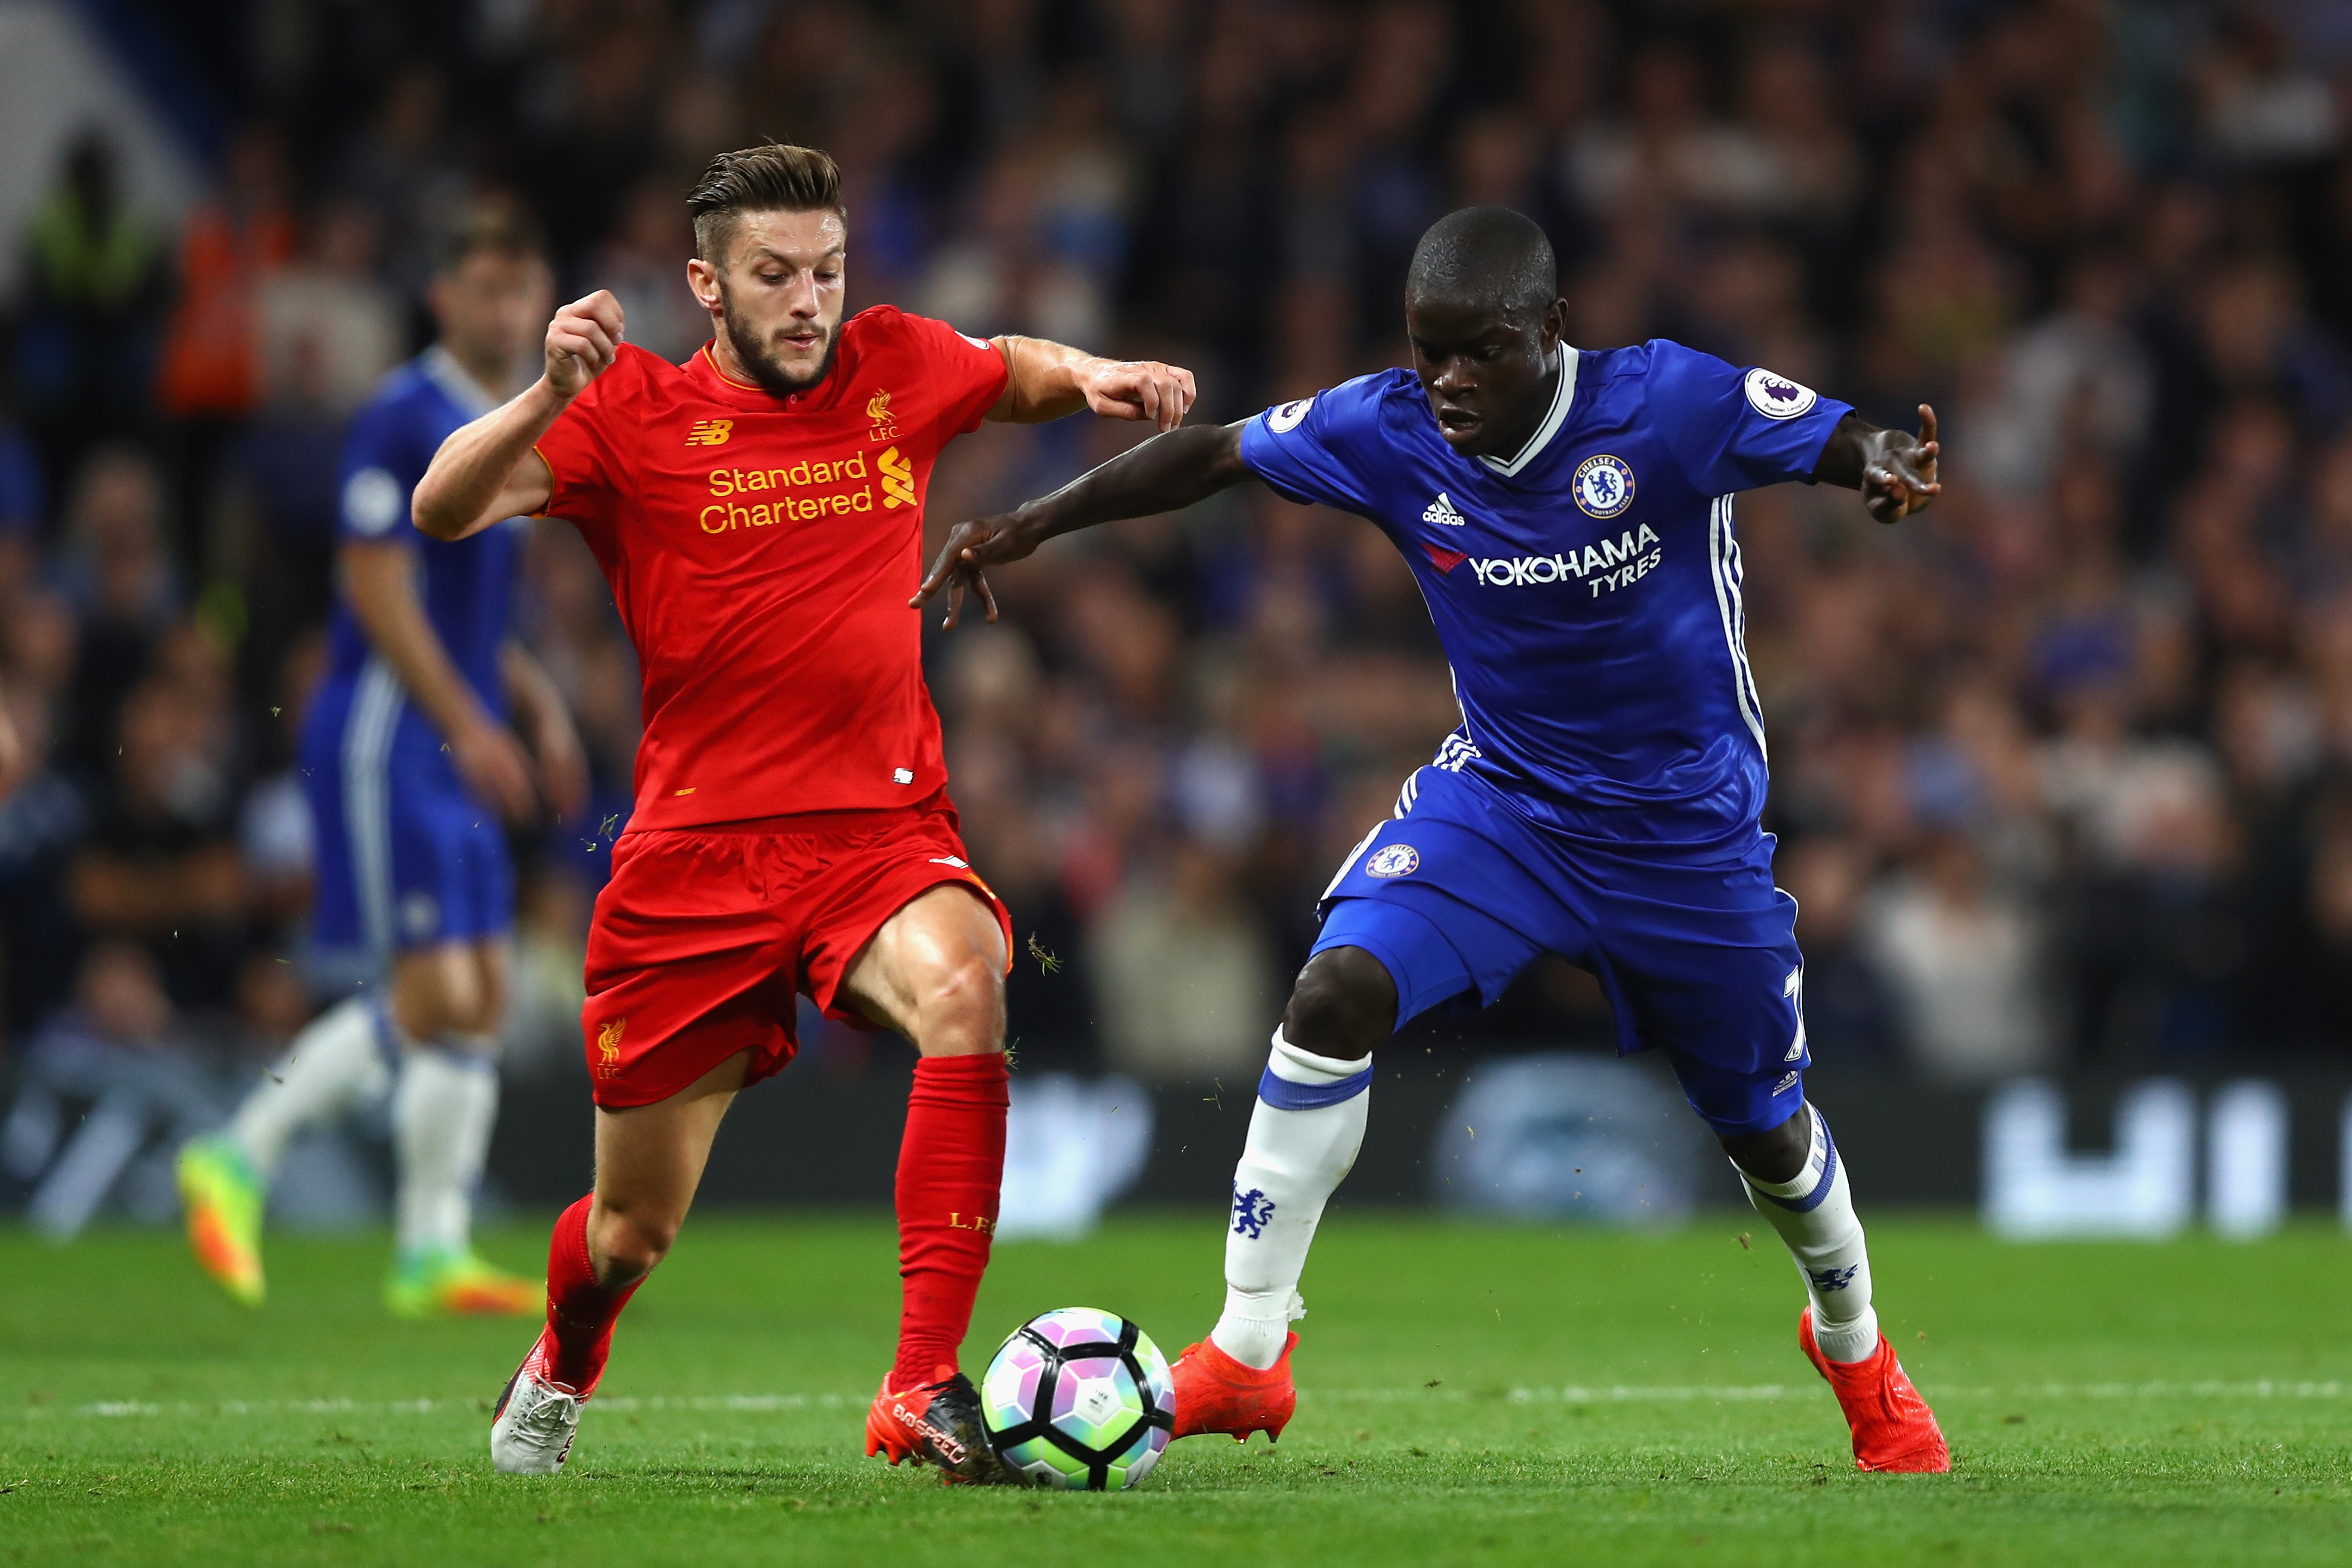 Liverpool Vs. Chelsea: 5 Keys To The Match